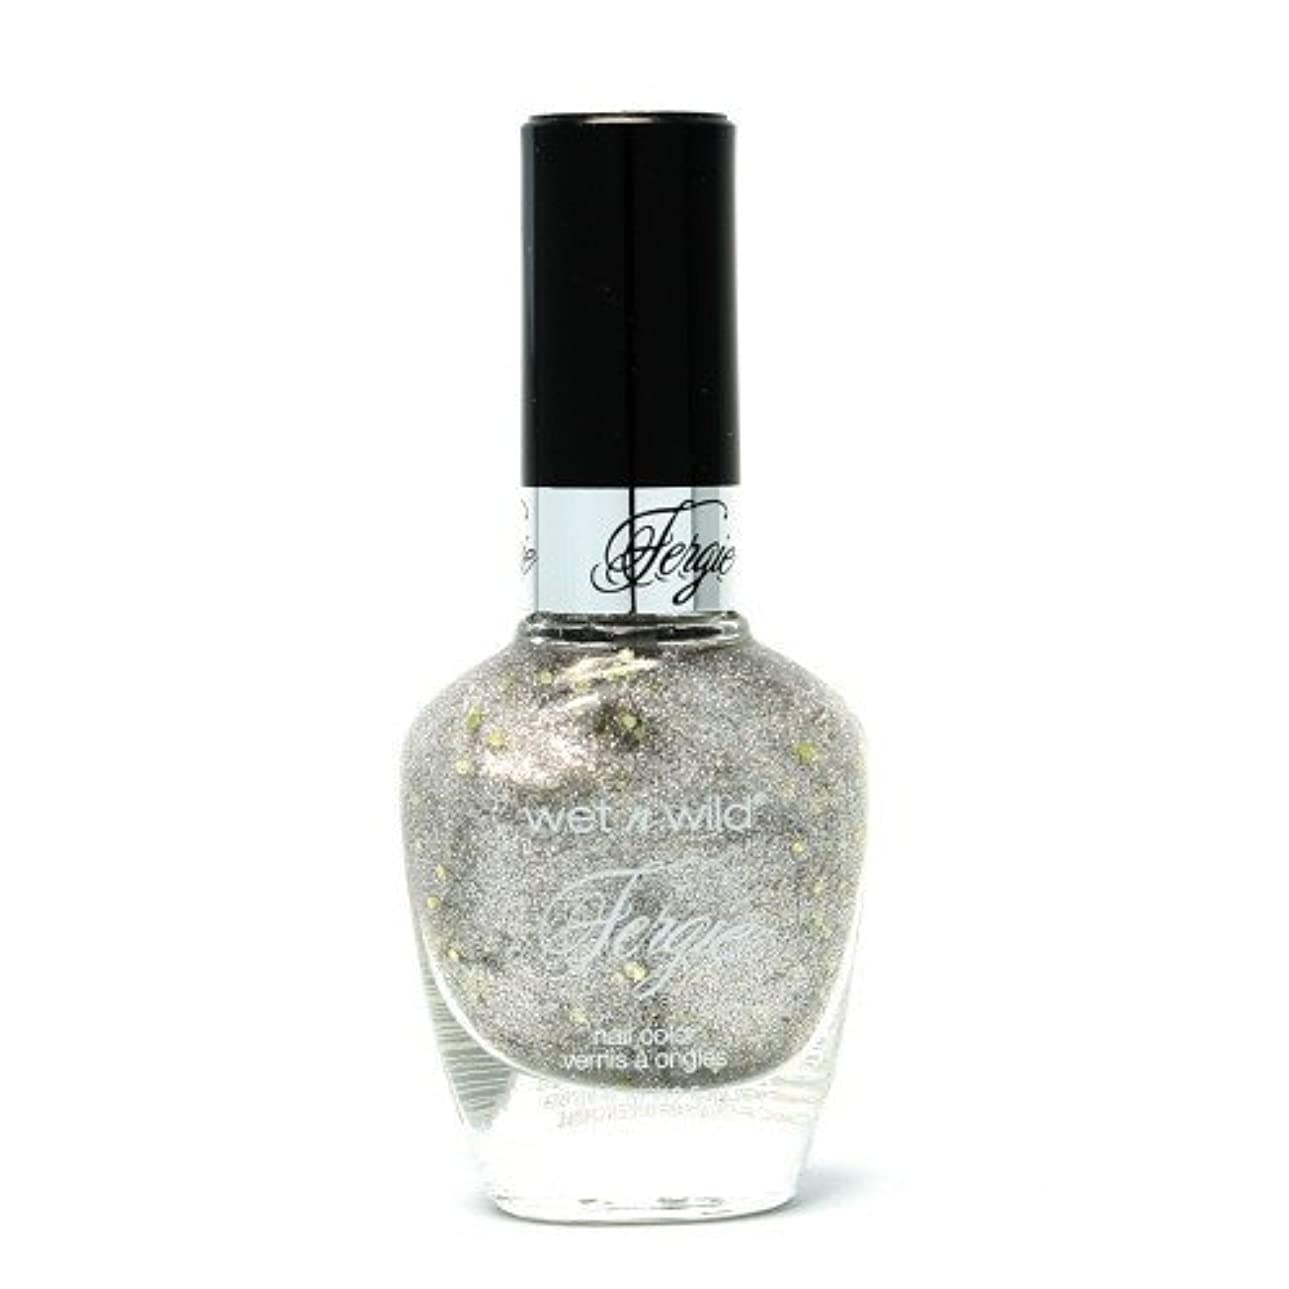 領事館収束する協力する(3 Pack) WET N WILD Fergie Heavy Metal Nail Polish - Titanium Crush (DC) (並行輸入品)